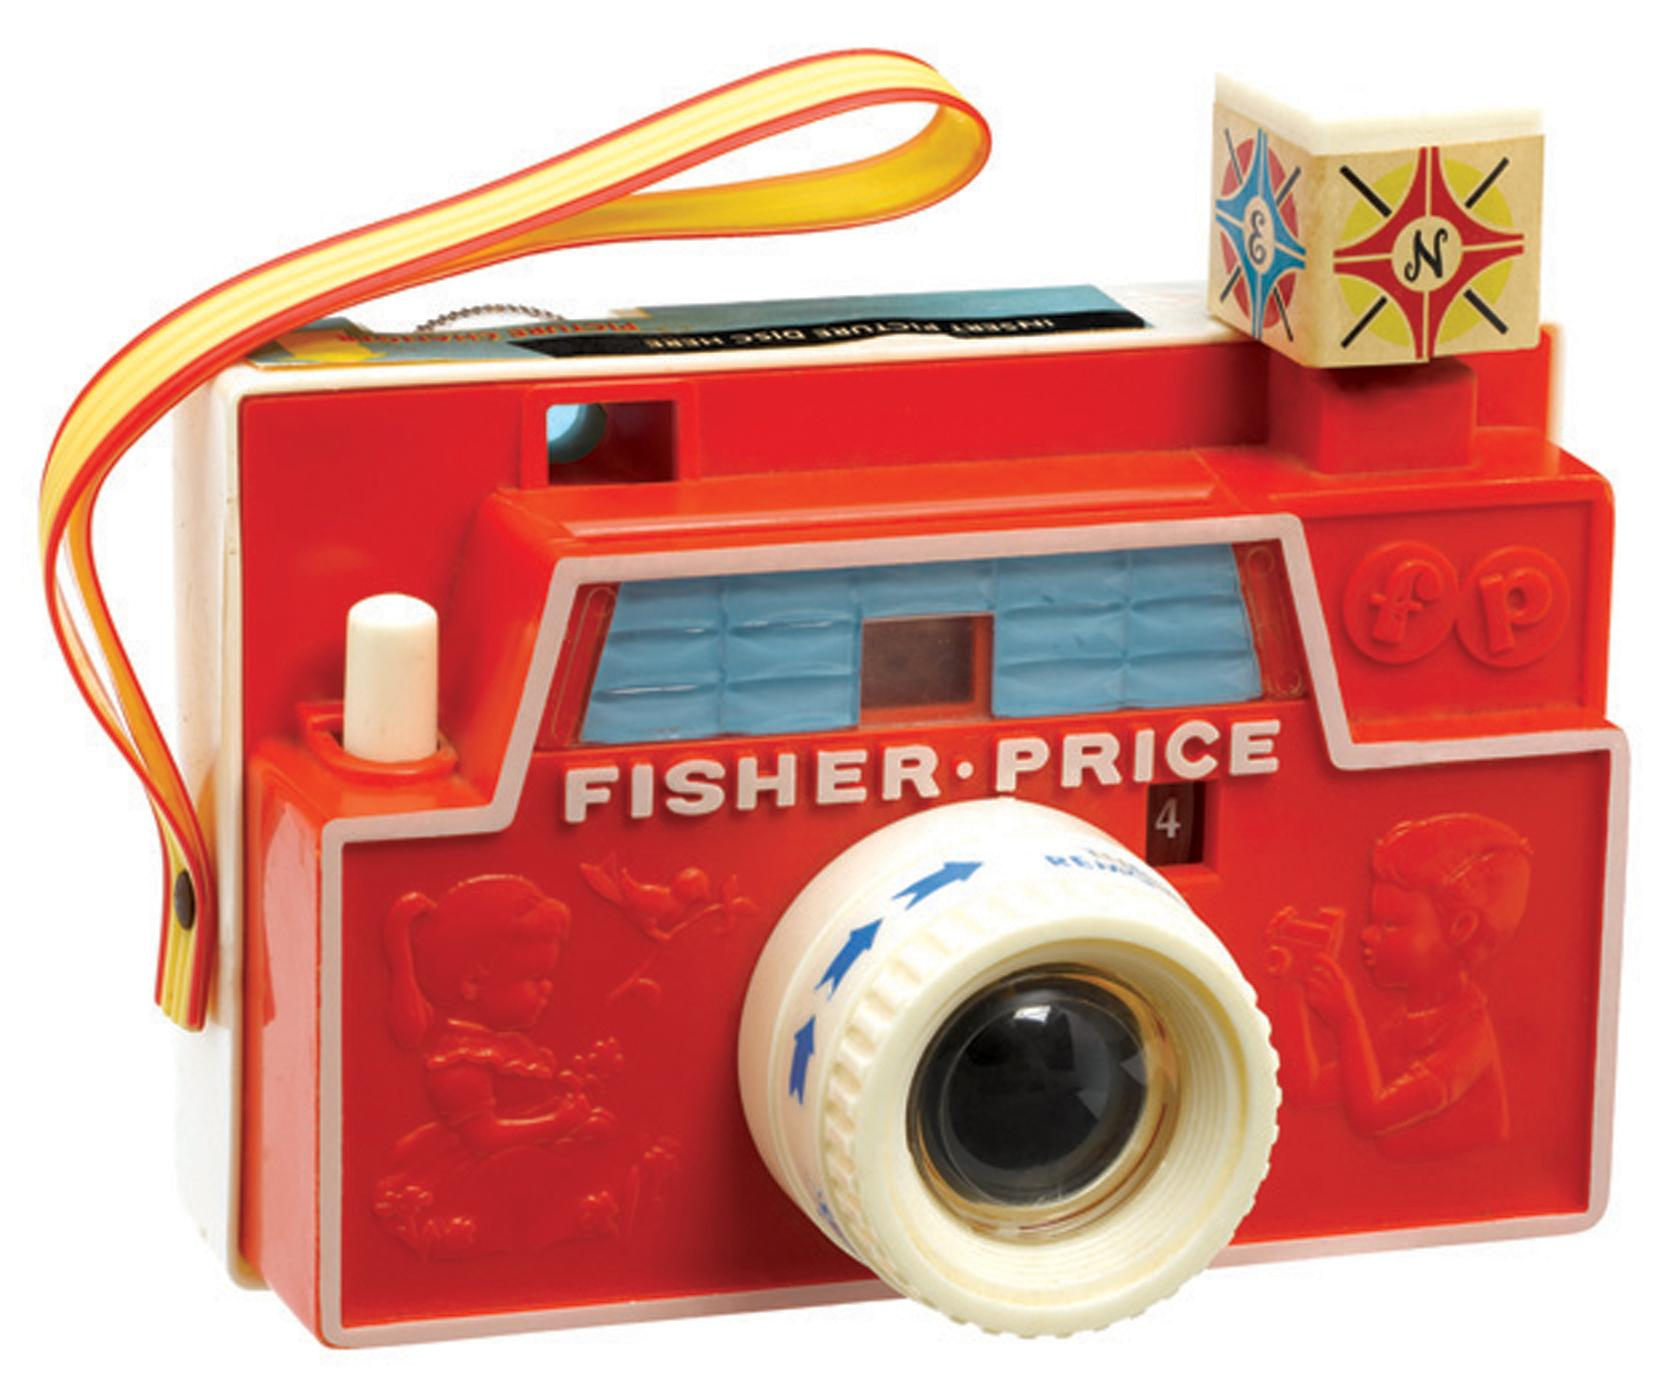 Fisher Price Classics Picture Disk Camera Amazon Toys & Games